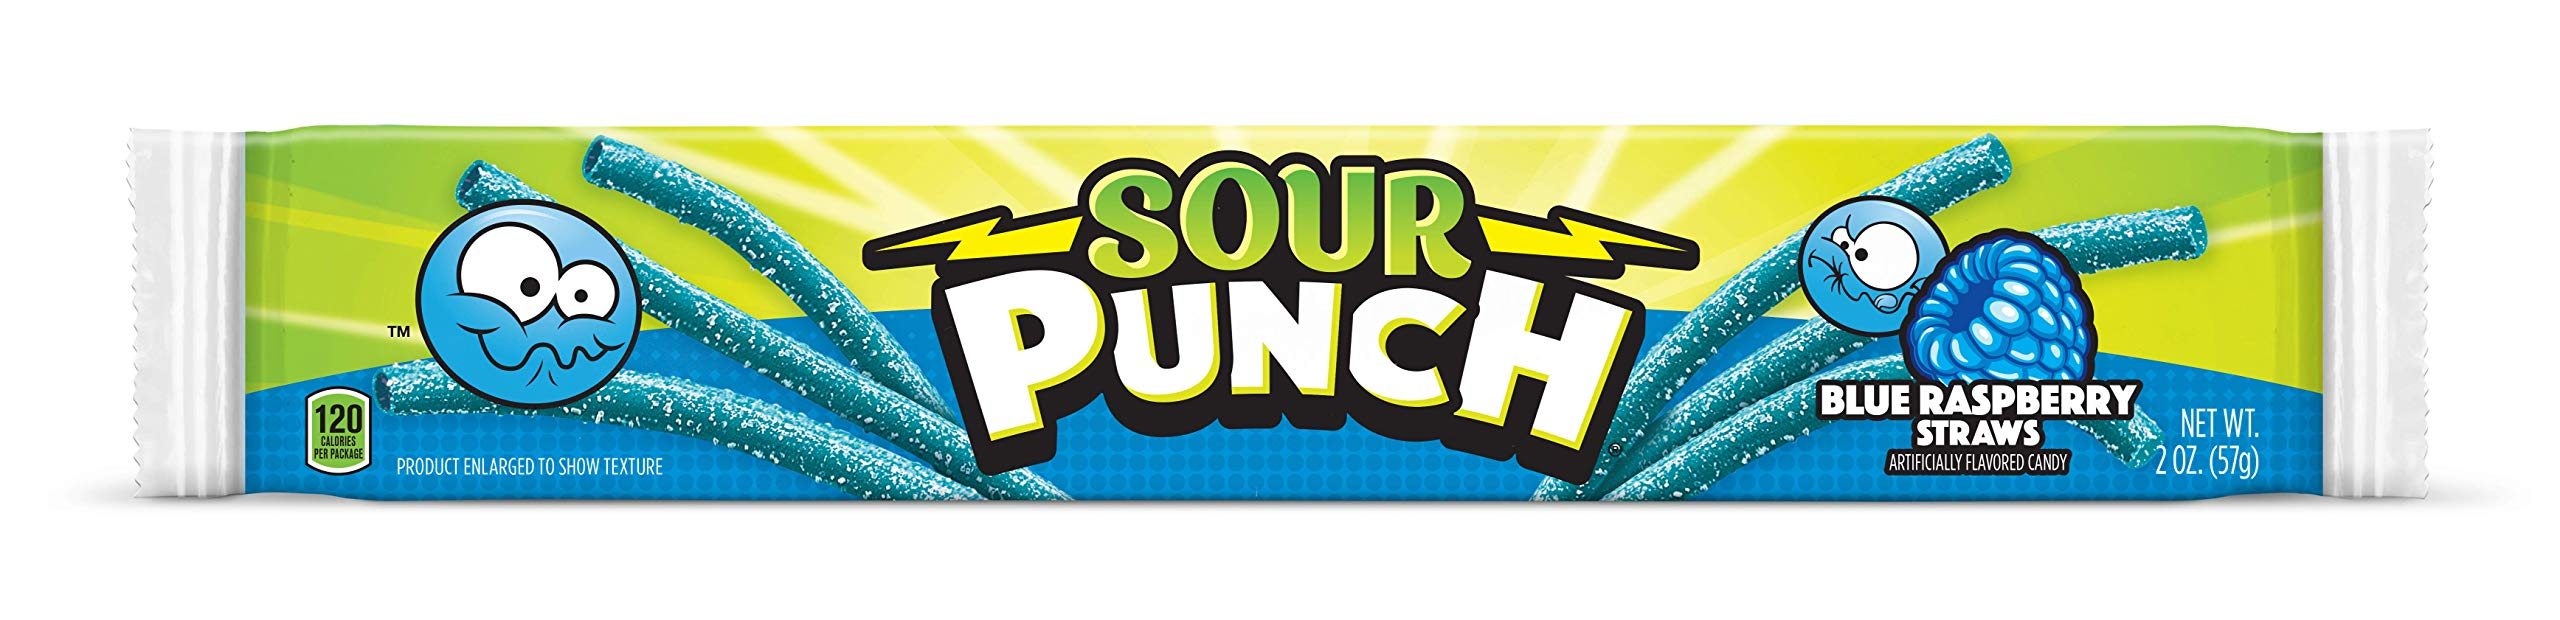 Sour Punch Straws, Sweet & Sour Blue Raspberry Flavored Soft, Chewy Candy, 2oz Tray (24 Pack) by Sour Punch